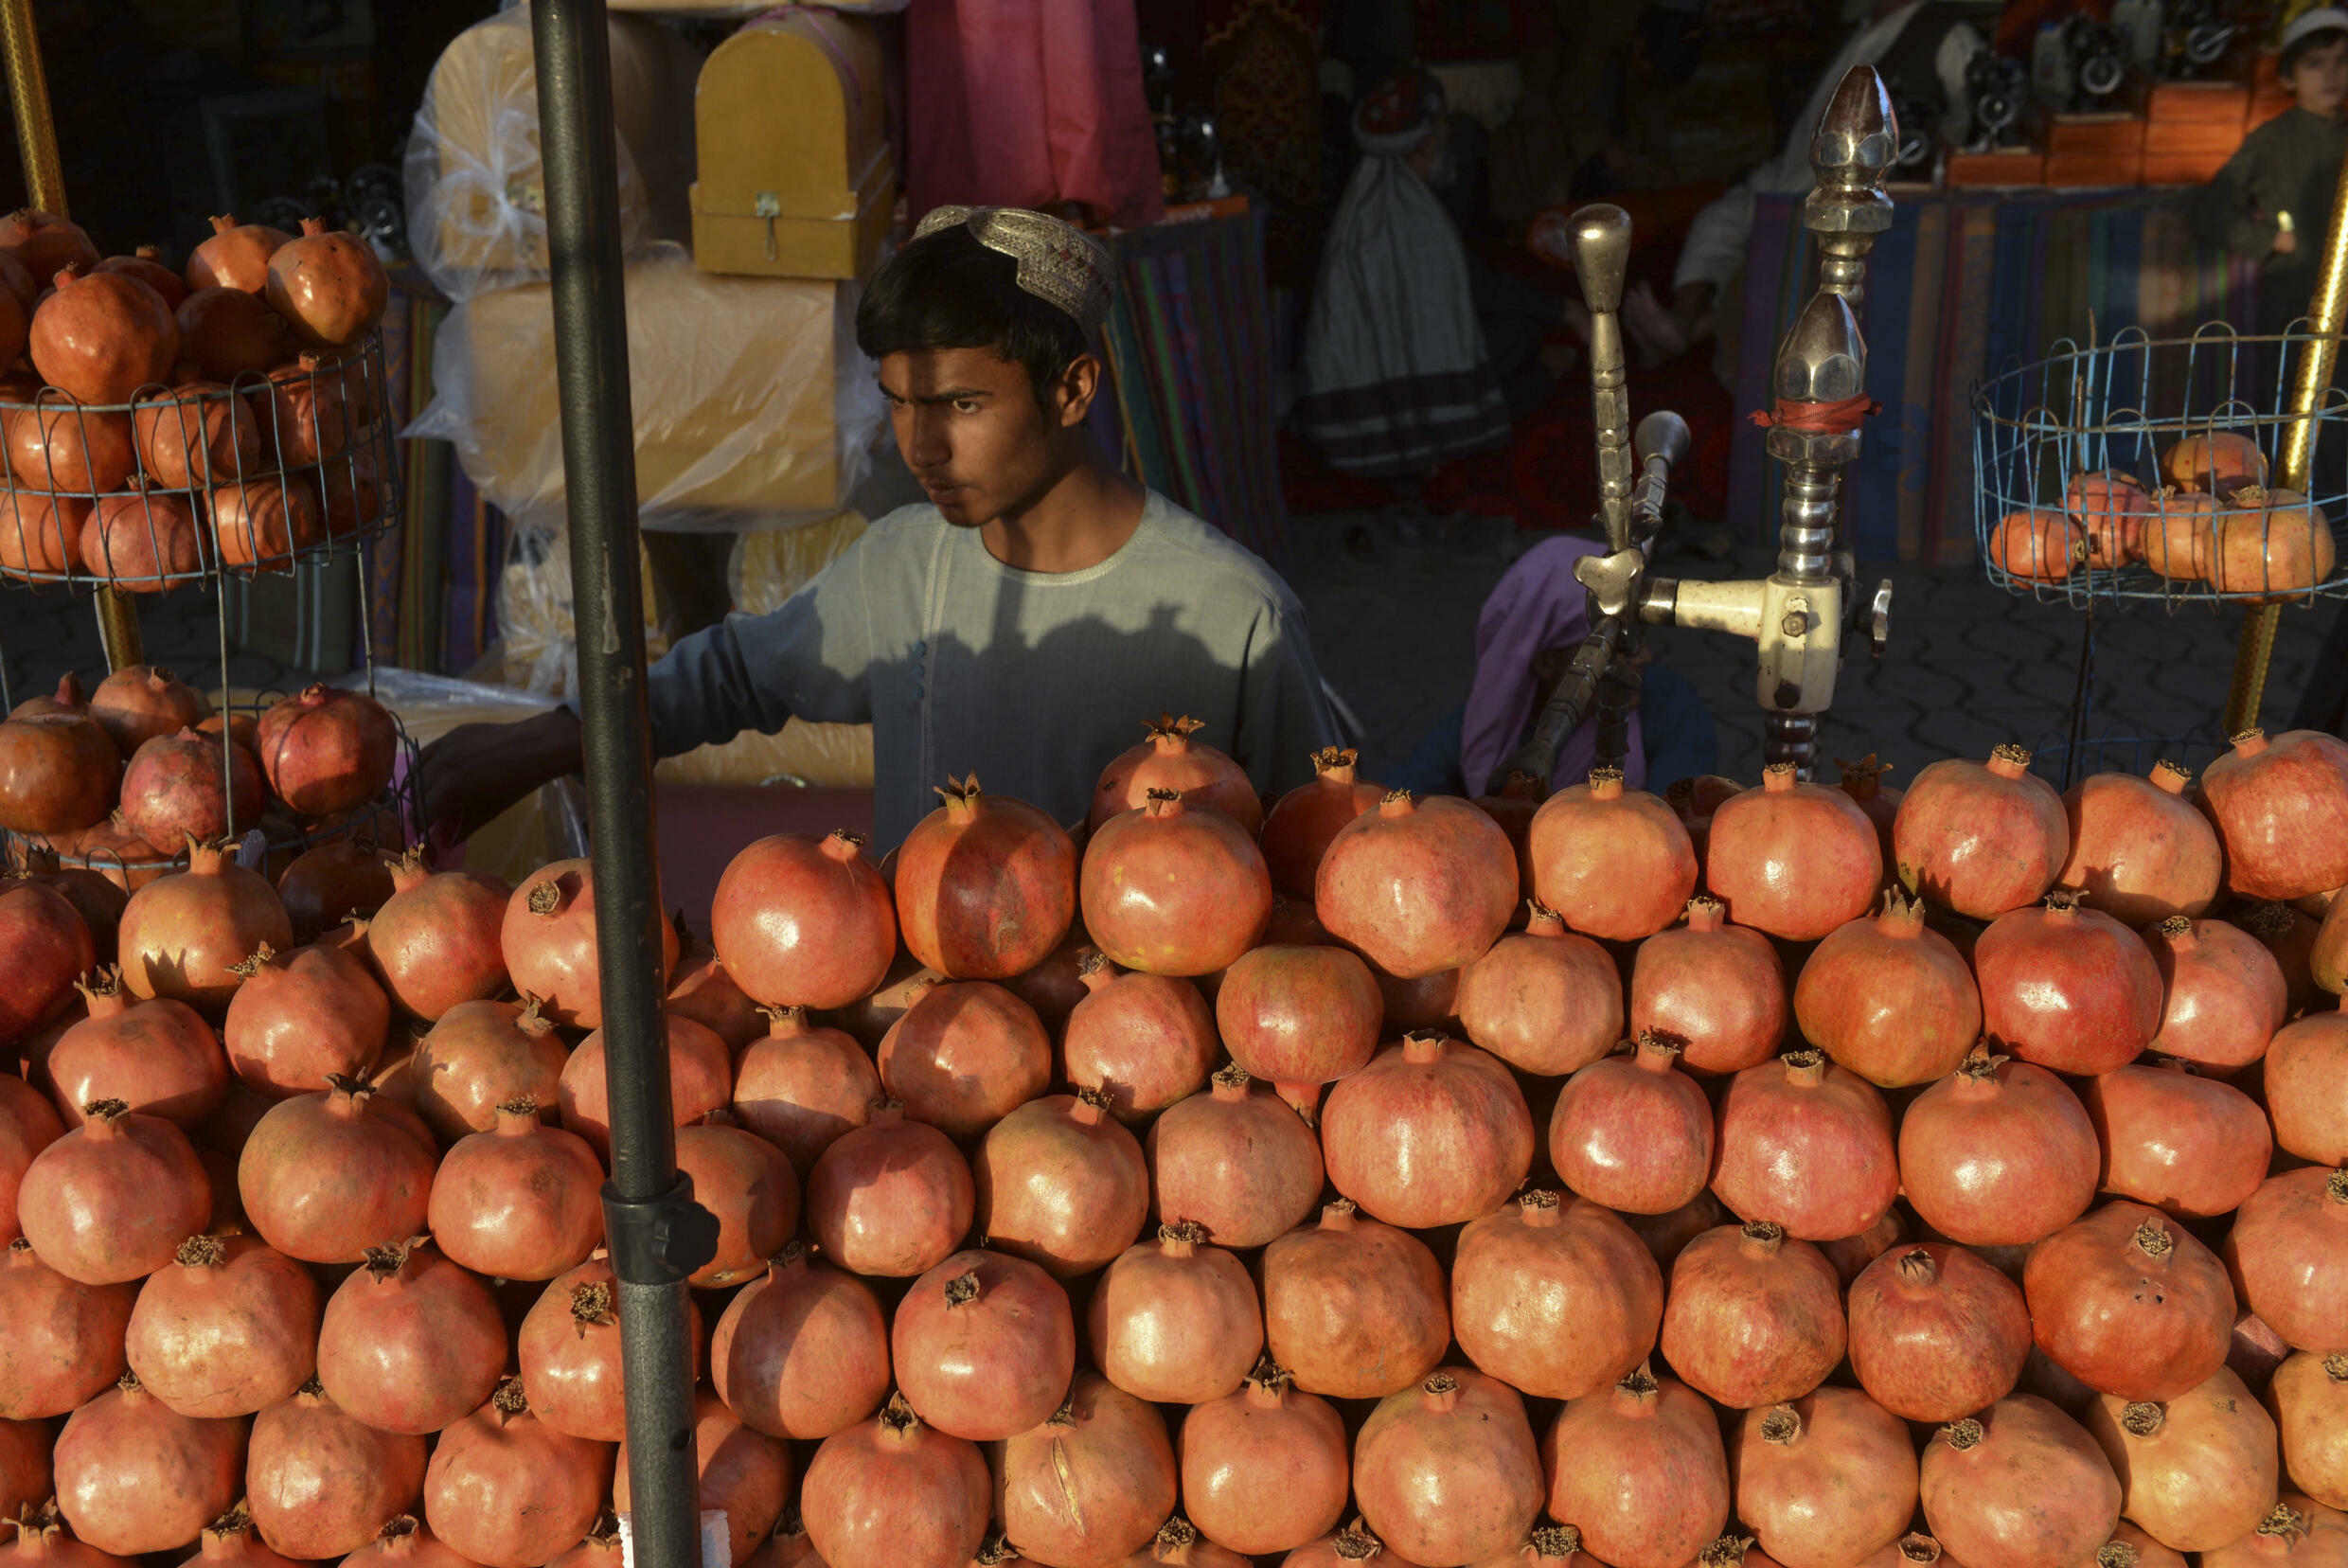 Pomegranate is one of the most important crops in southern Afghanistan